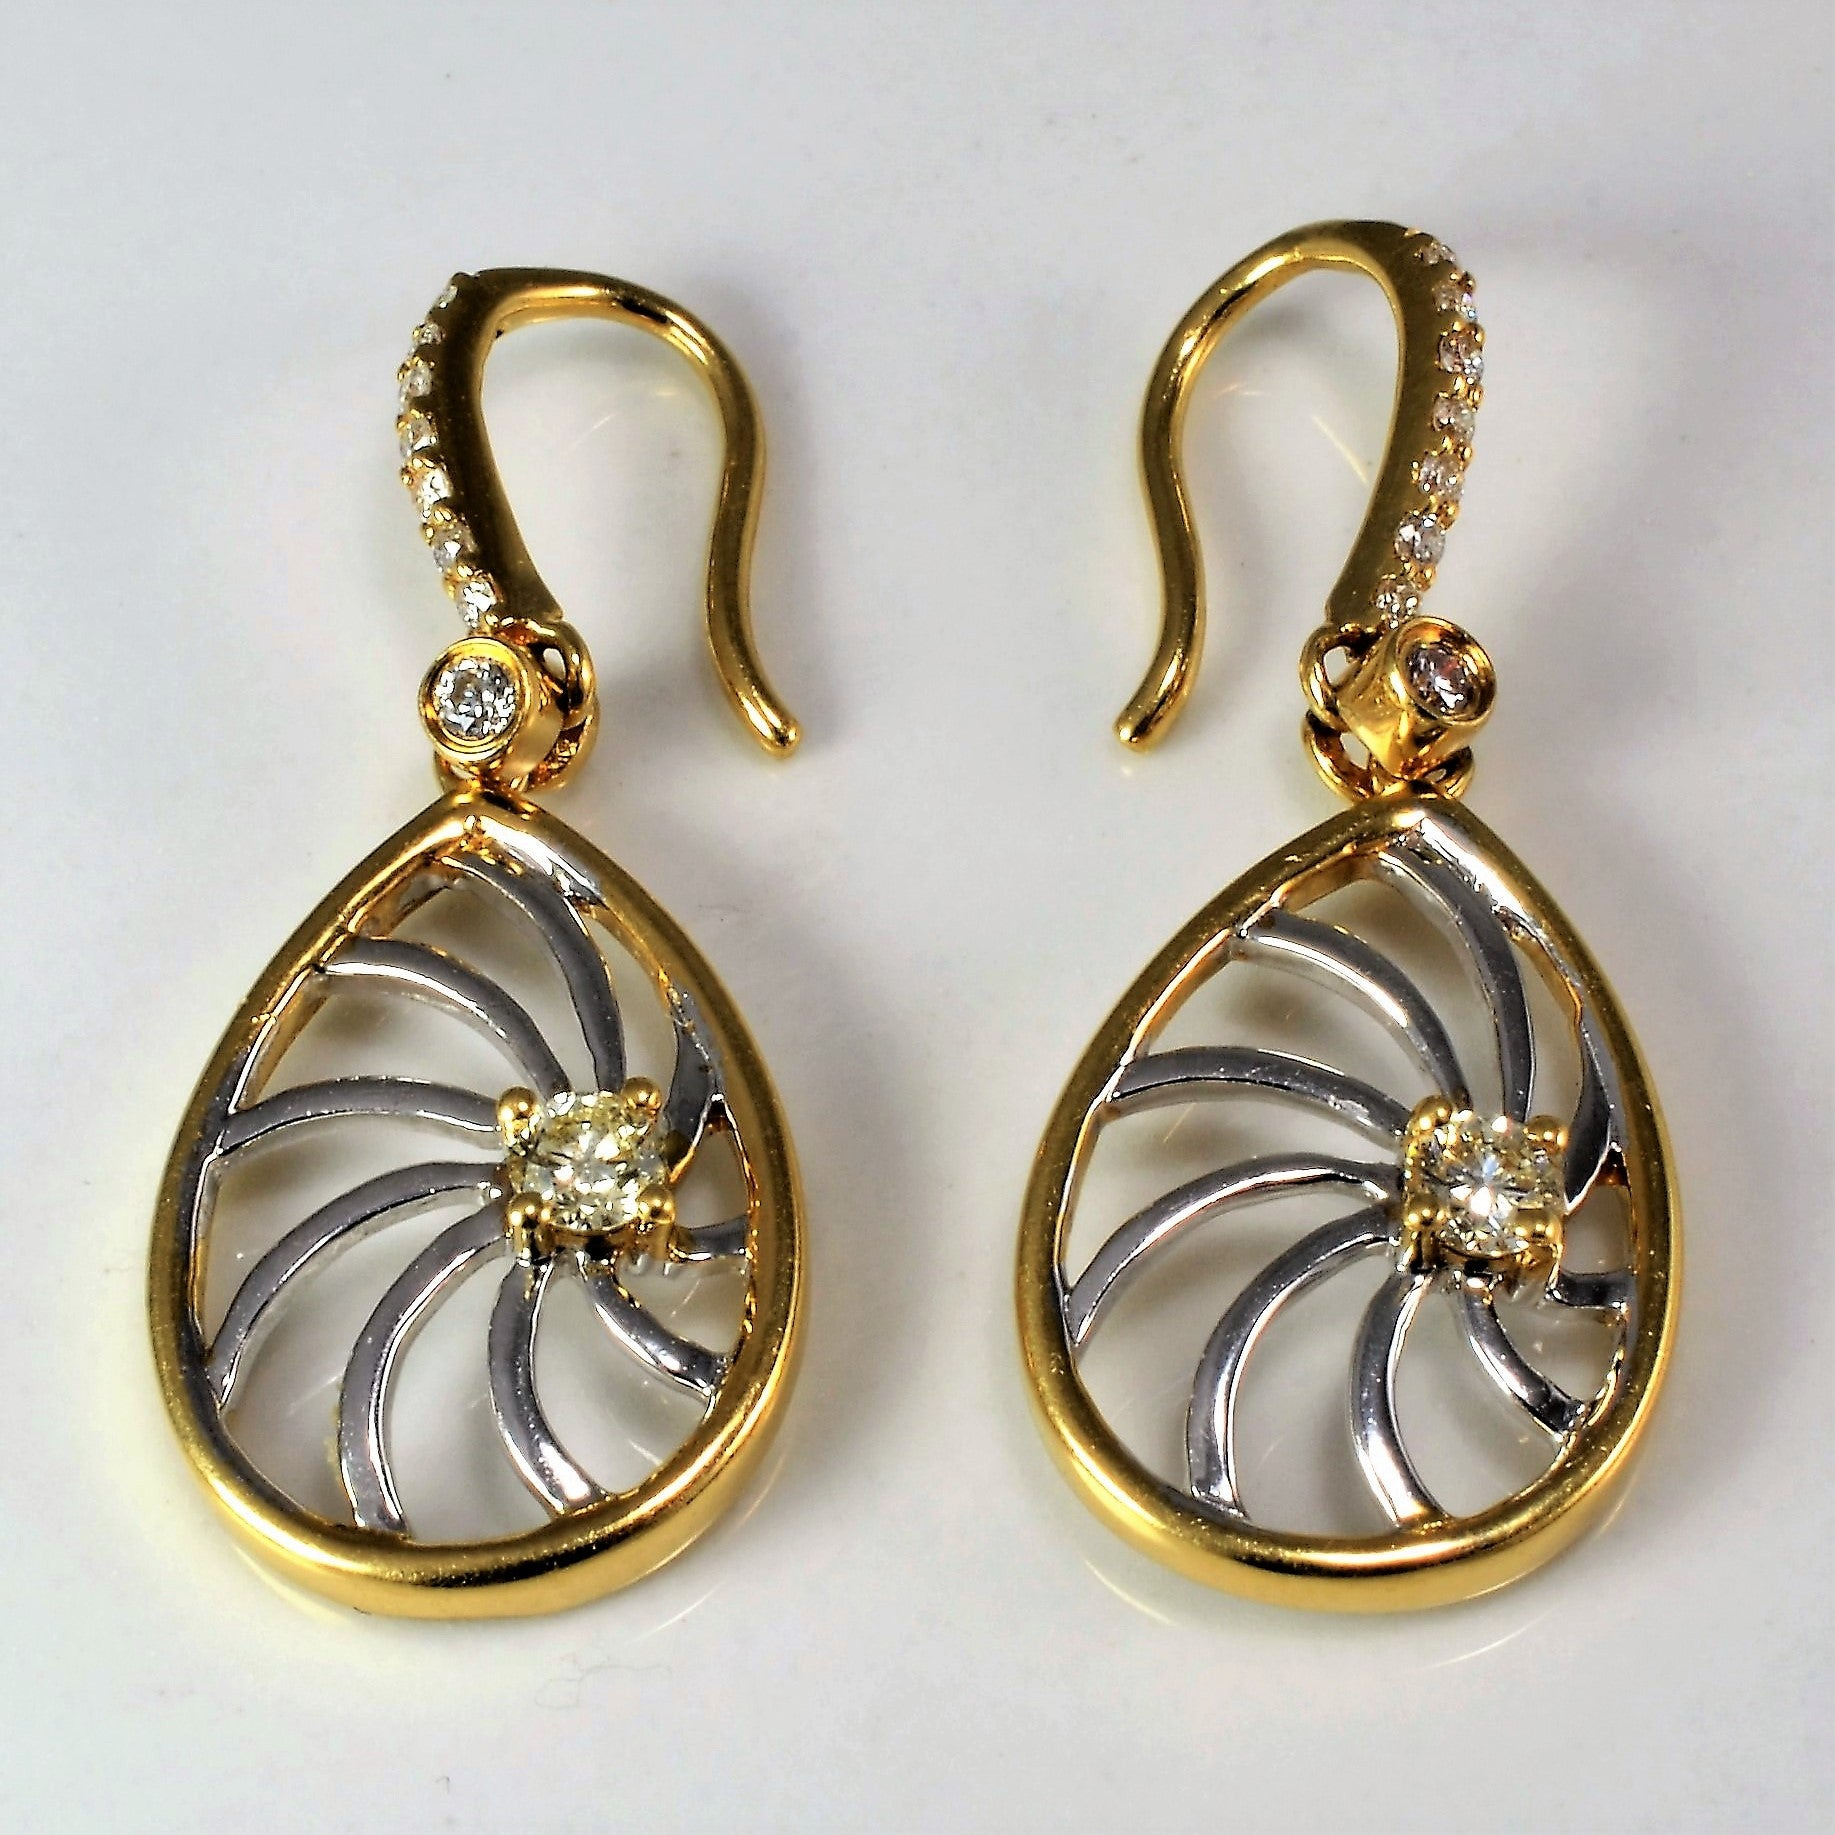 Two Tone Basal Diamond Earrings | 0.24 ctw |